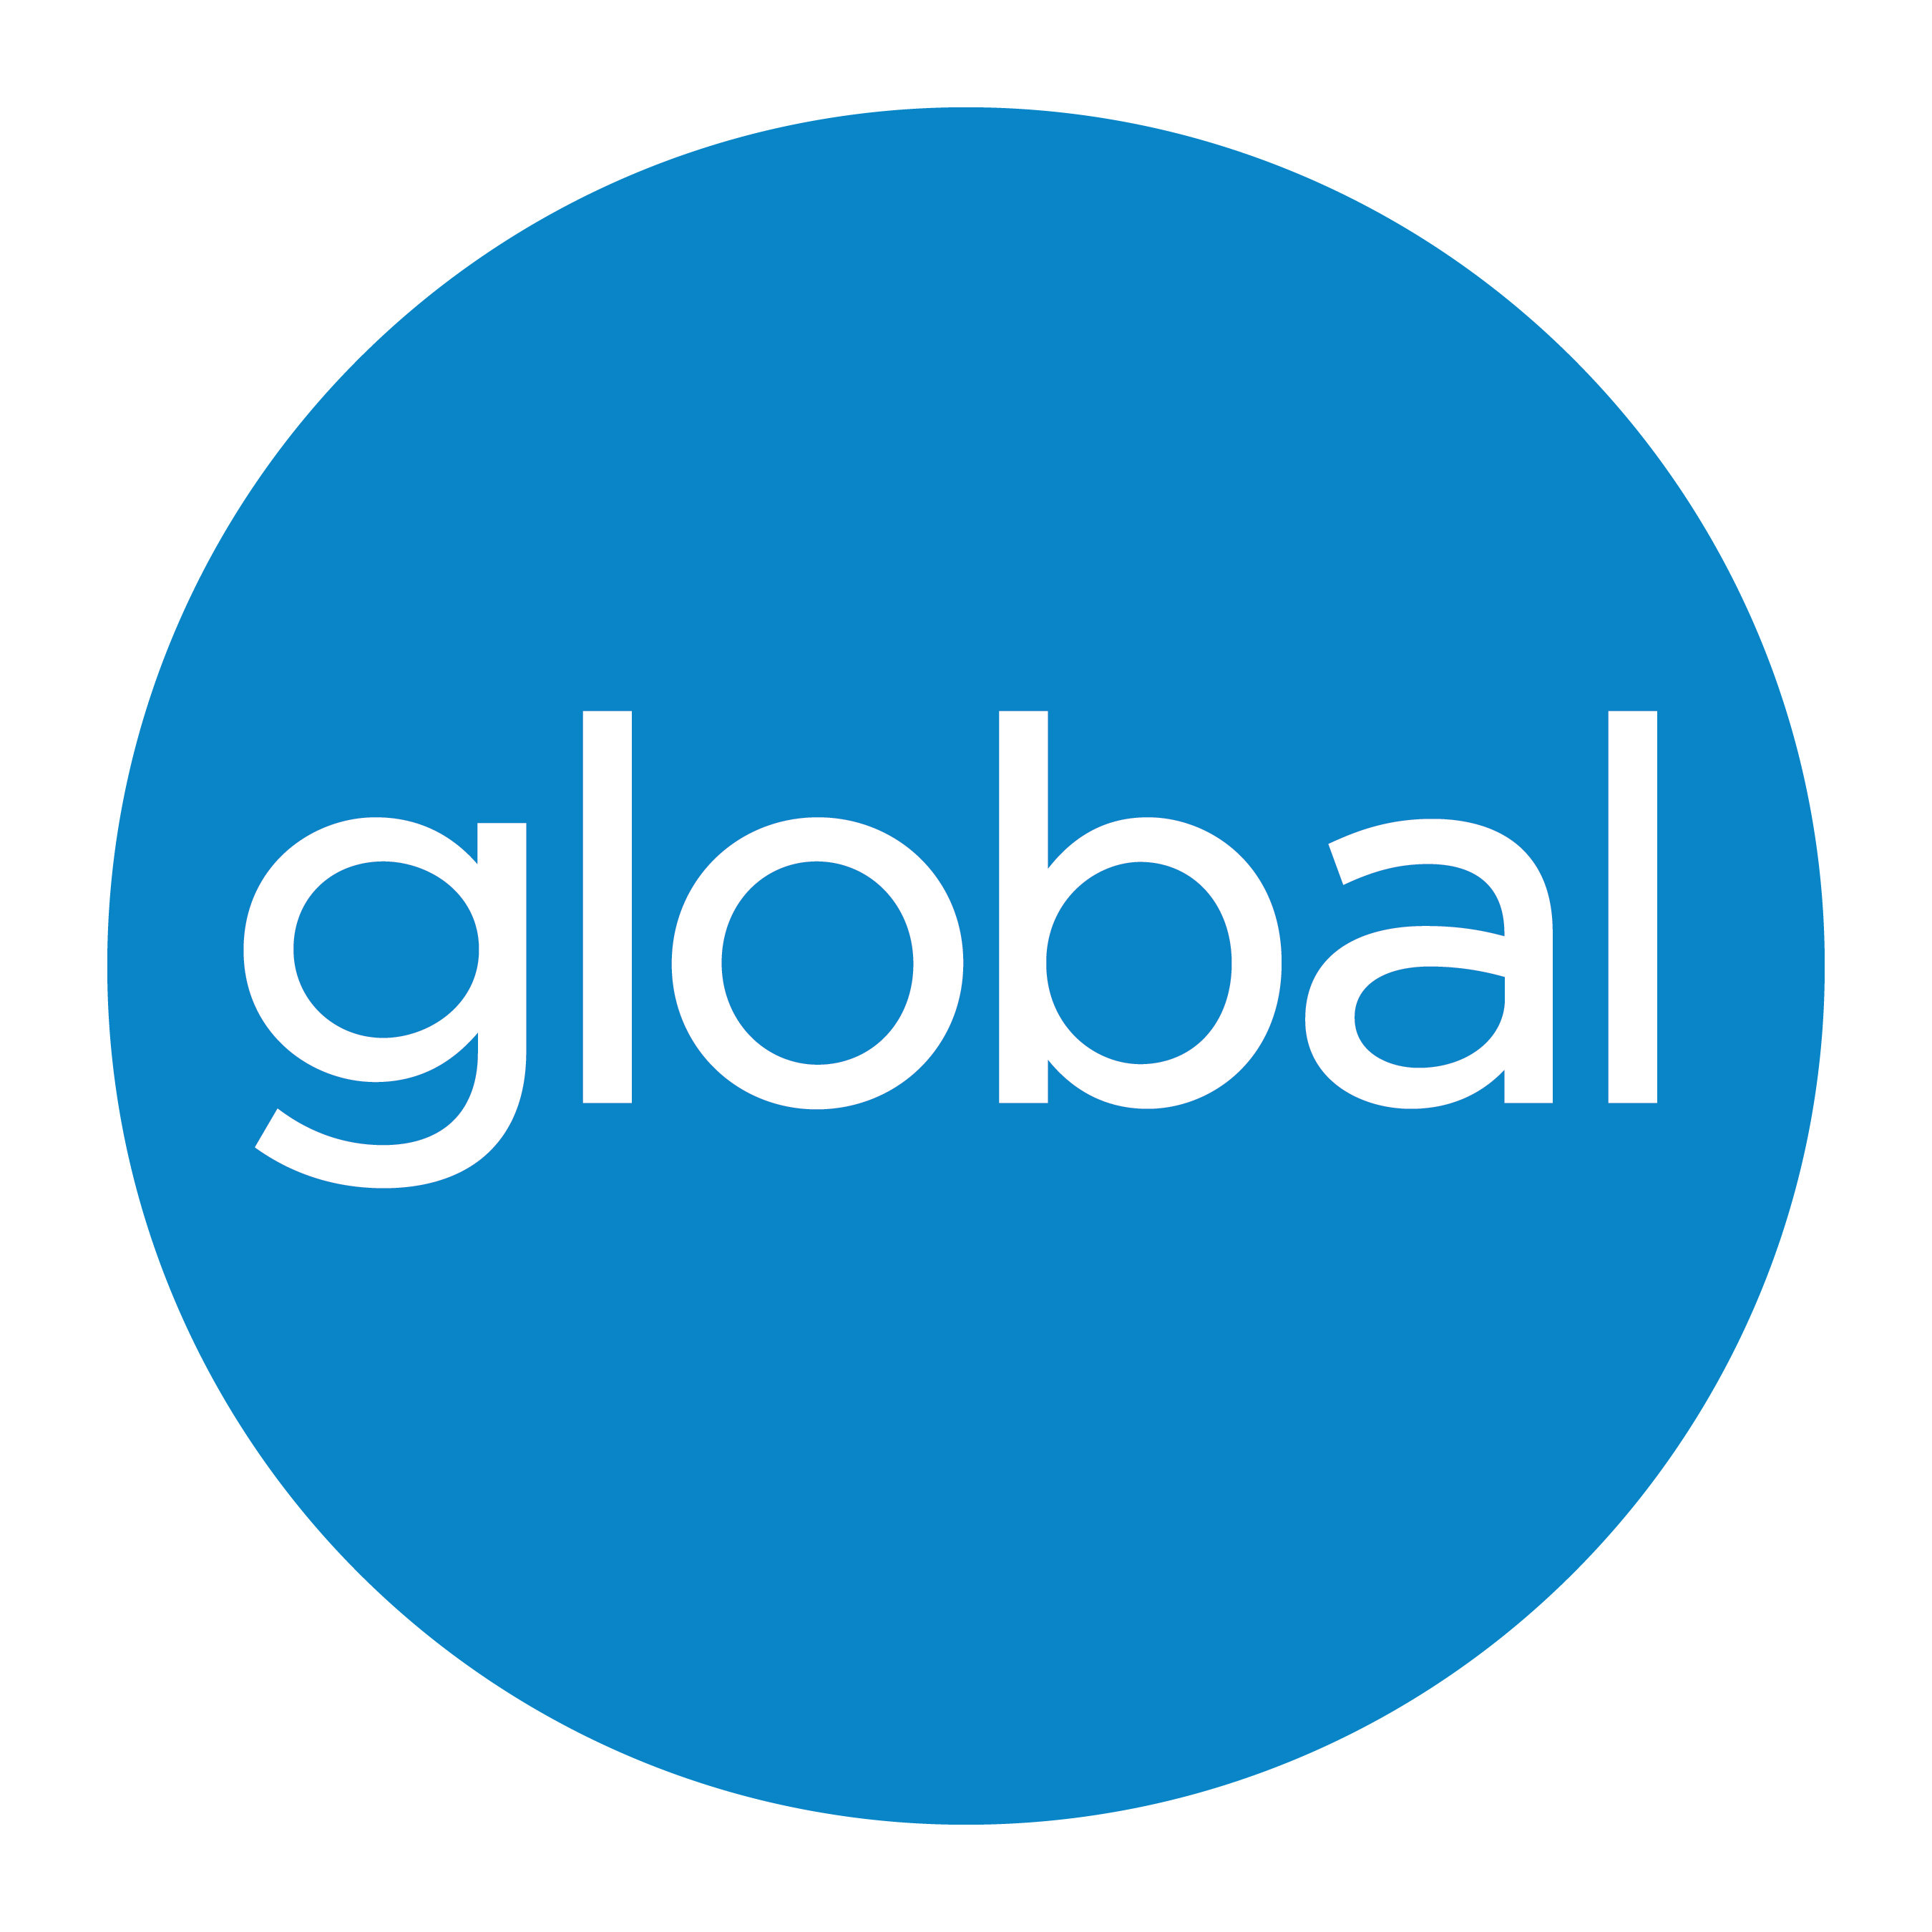 global total office furniture brand logo